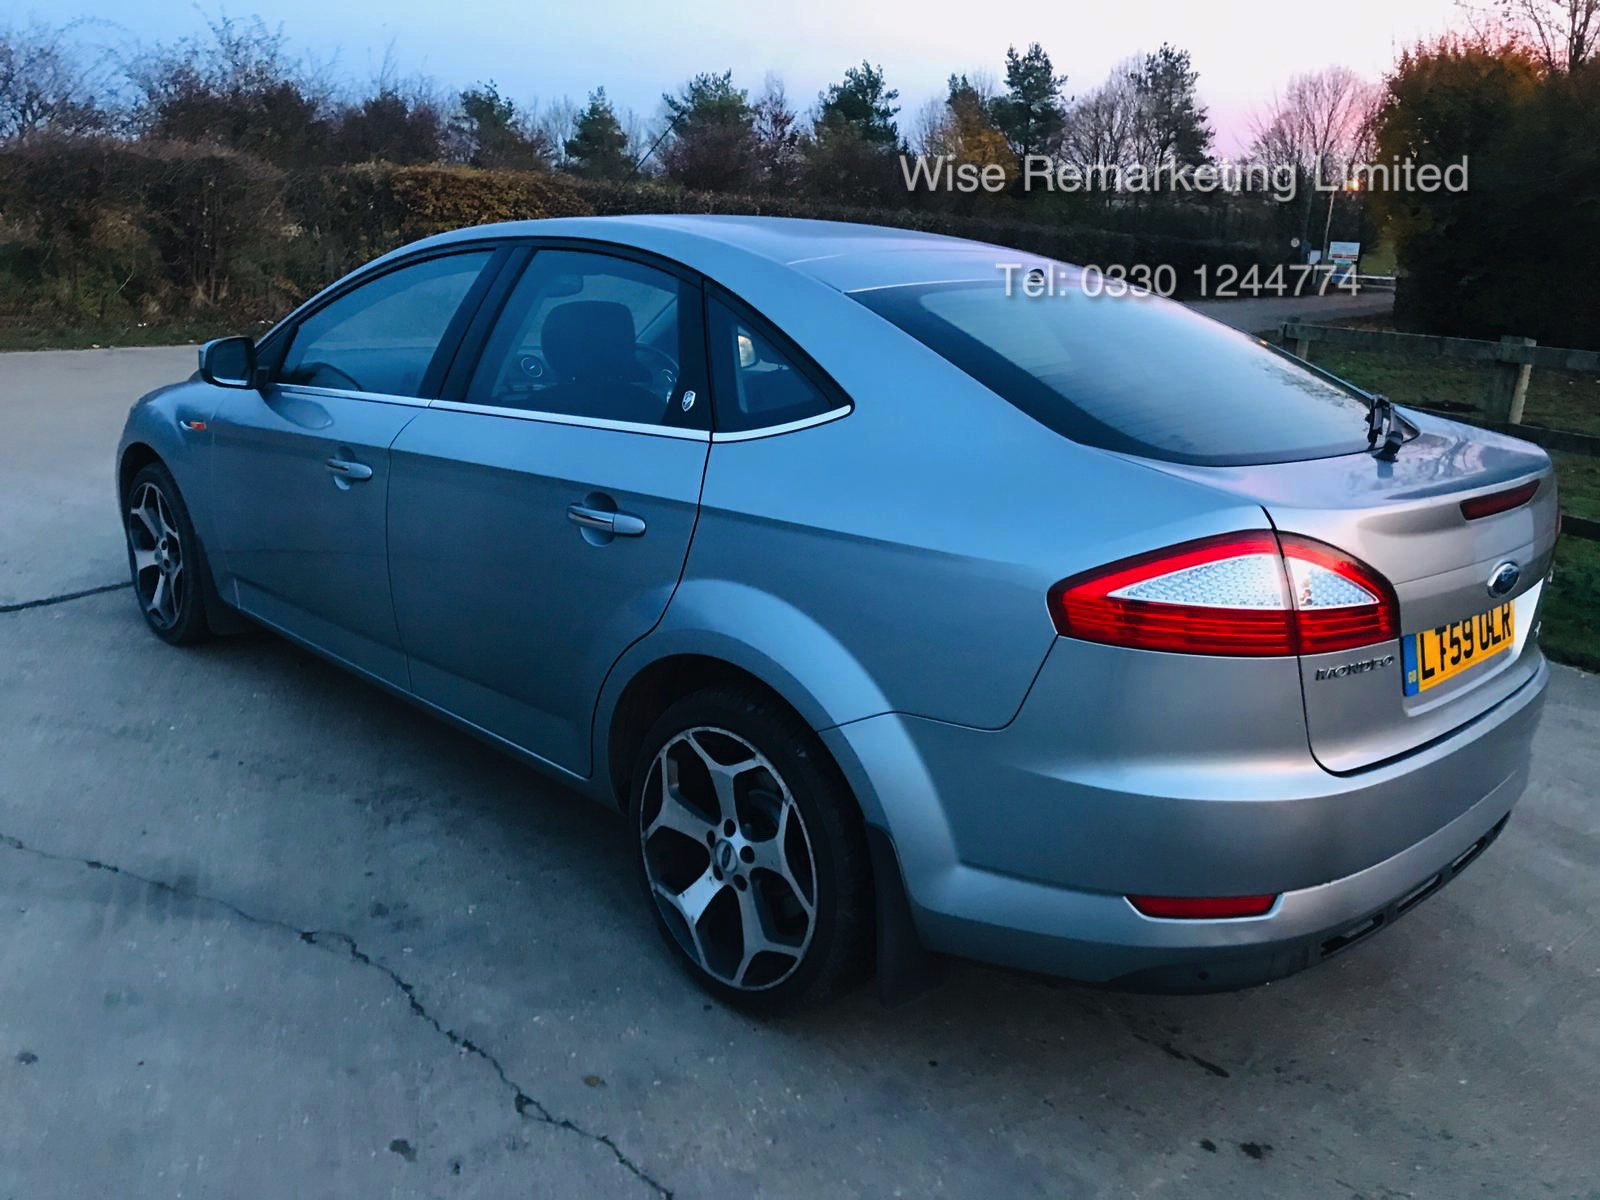 Lot 29 - Ford Mondeo GHIA 1.8 TDCI - 2010 Model - Bluetooth - Alloy Wheels -